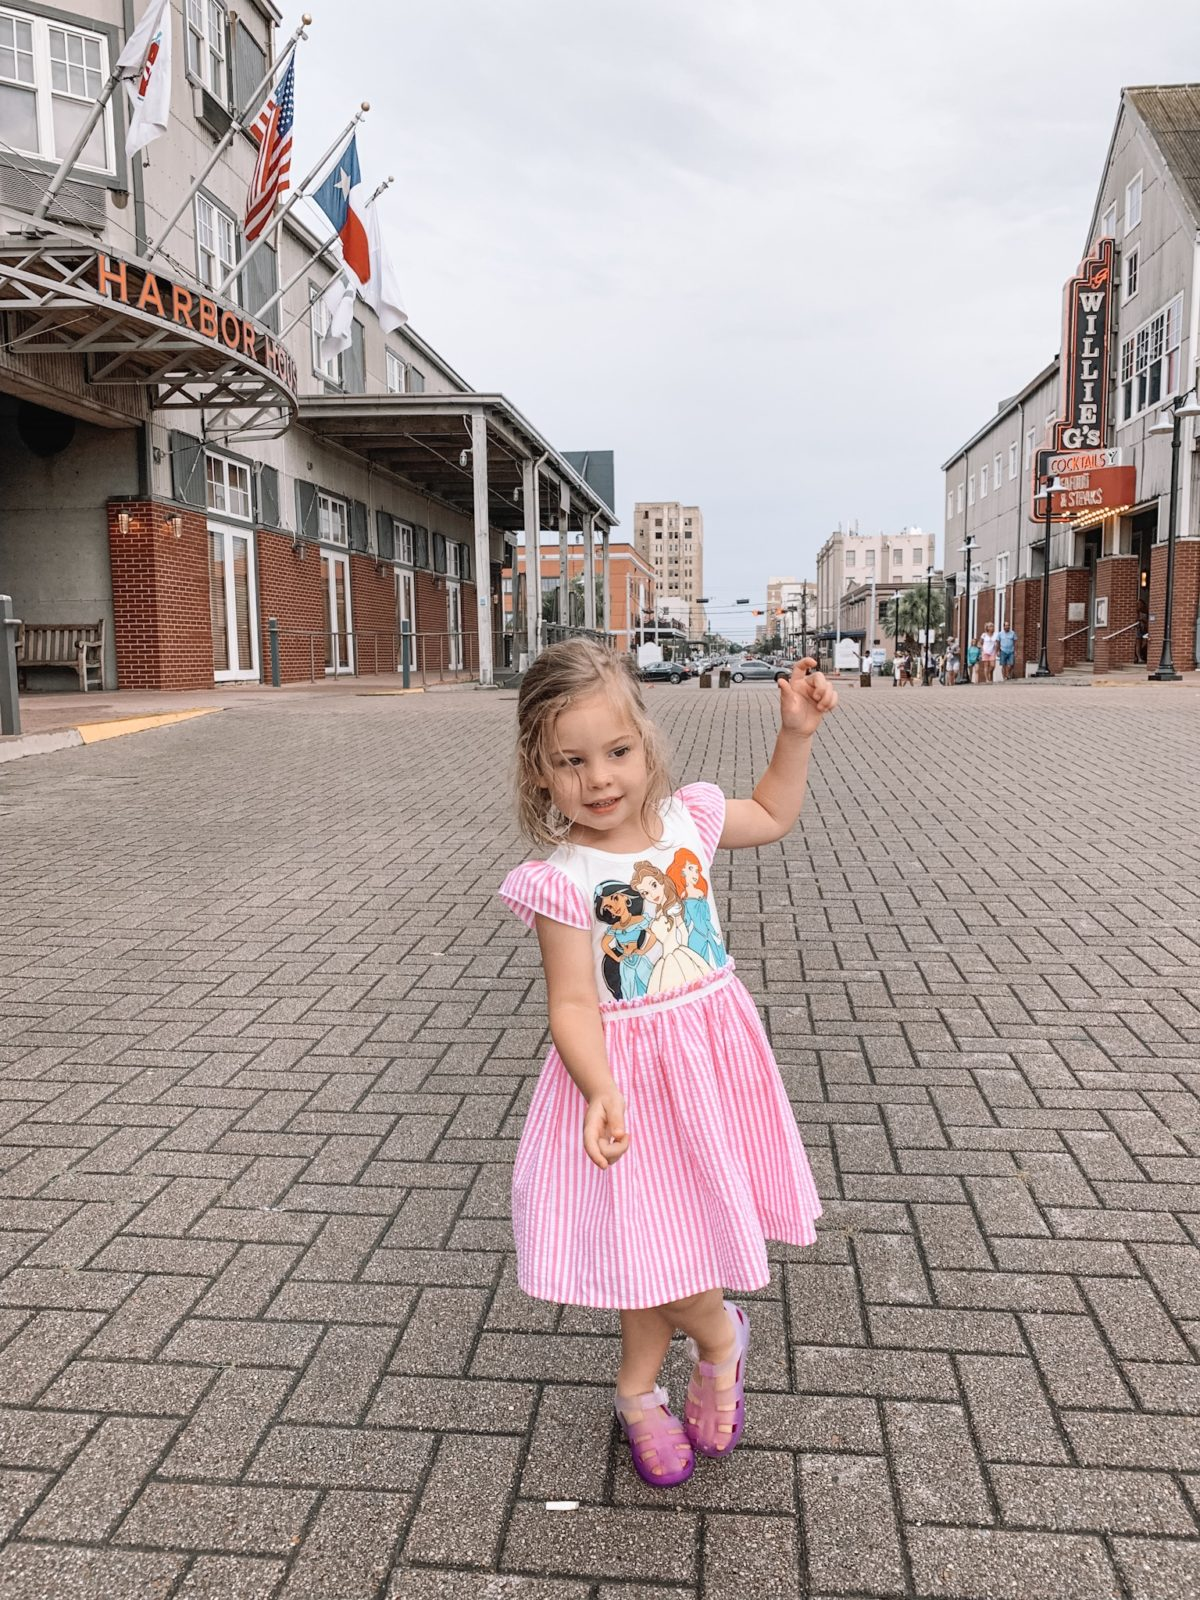 48 Hours in Galveston - Toddlers princess dress